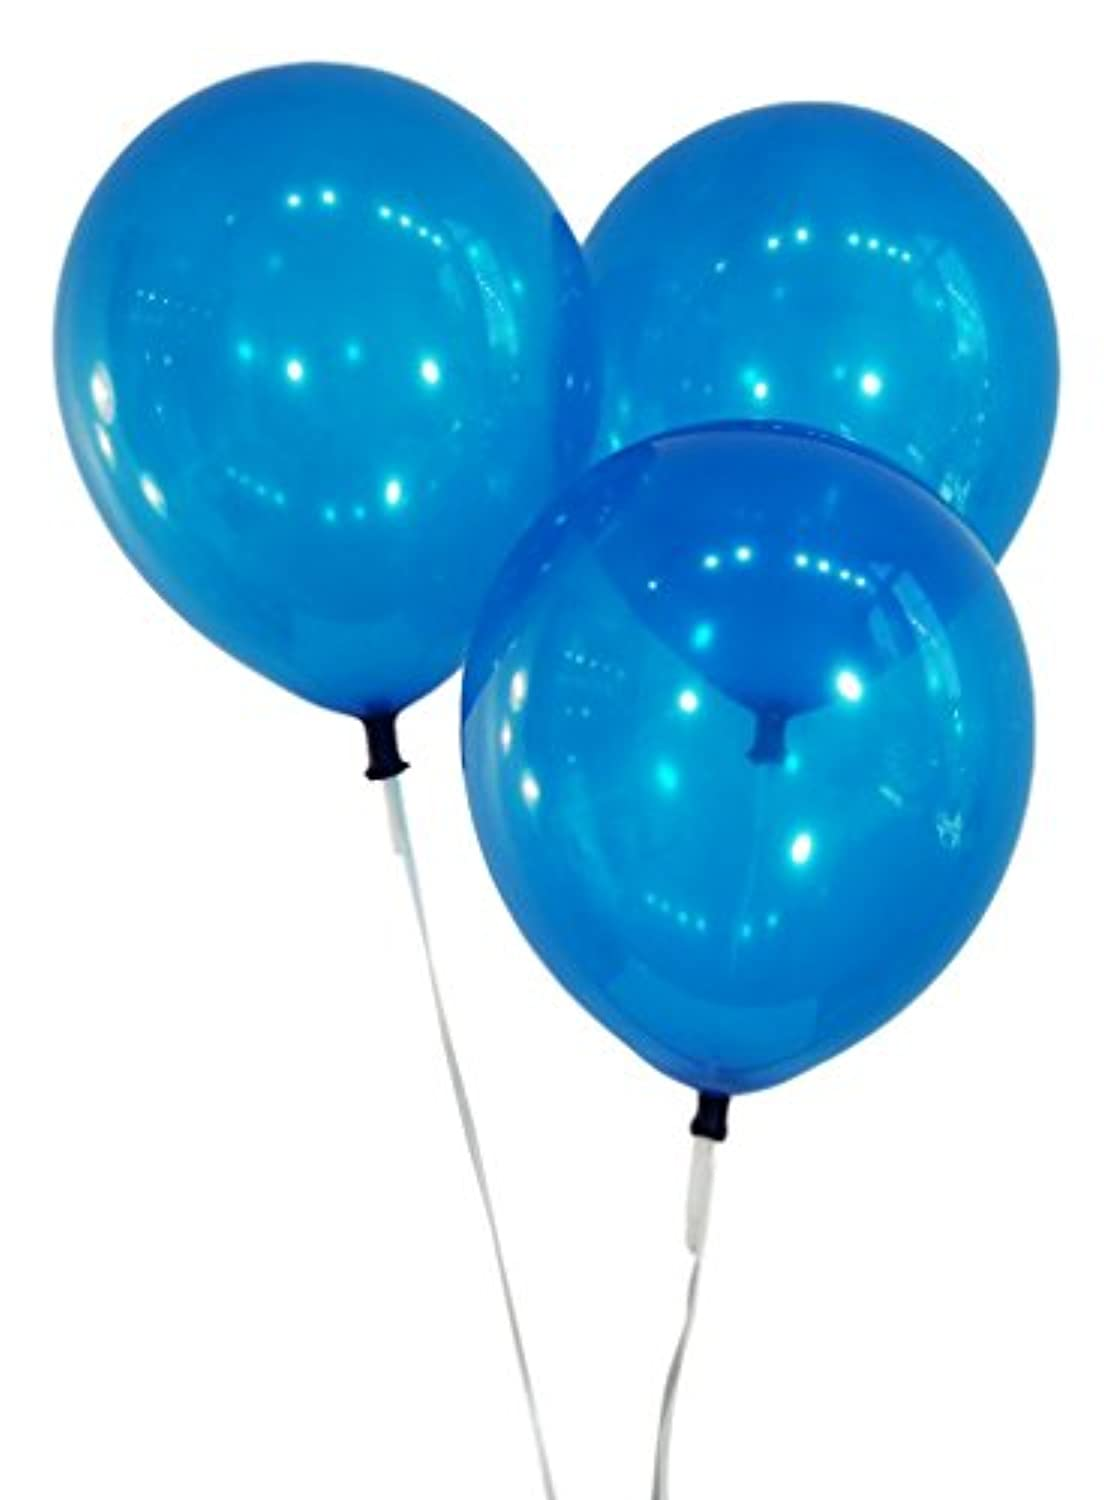 Creative Balloons 30cm Latex Balloons - Pack of 144 Piece - Decorator Navy Blue